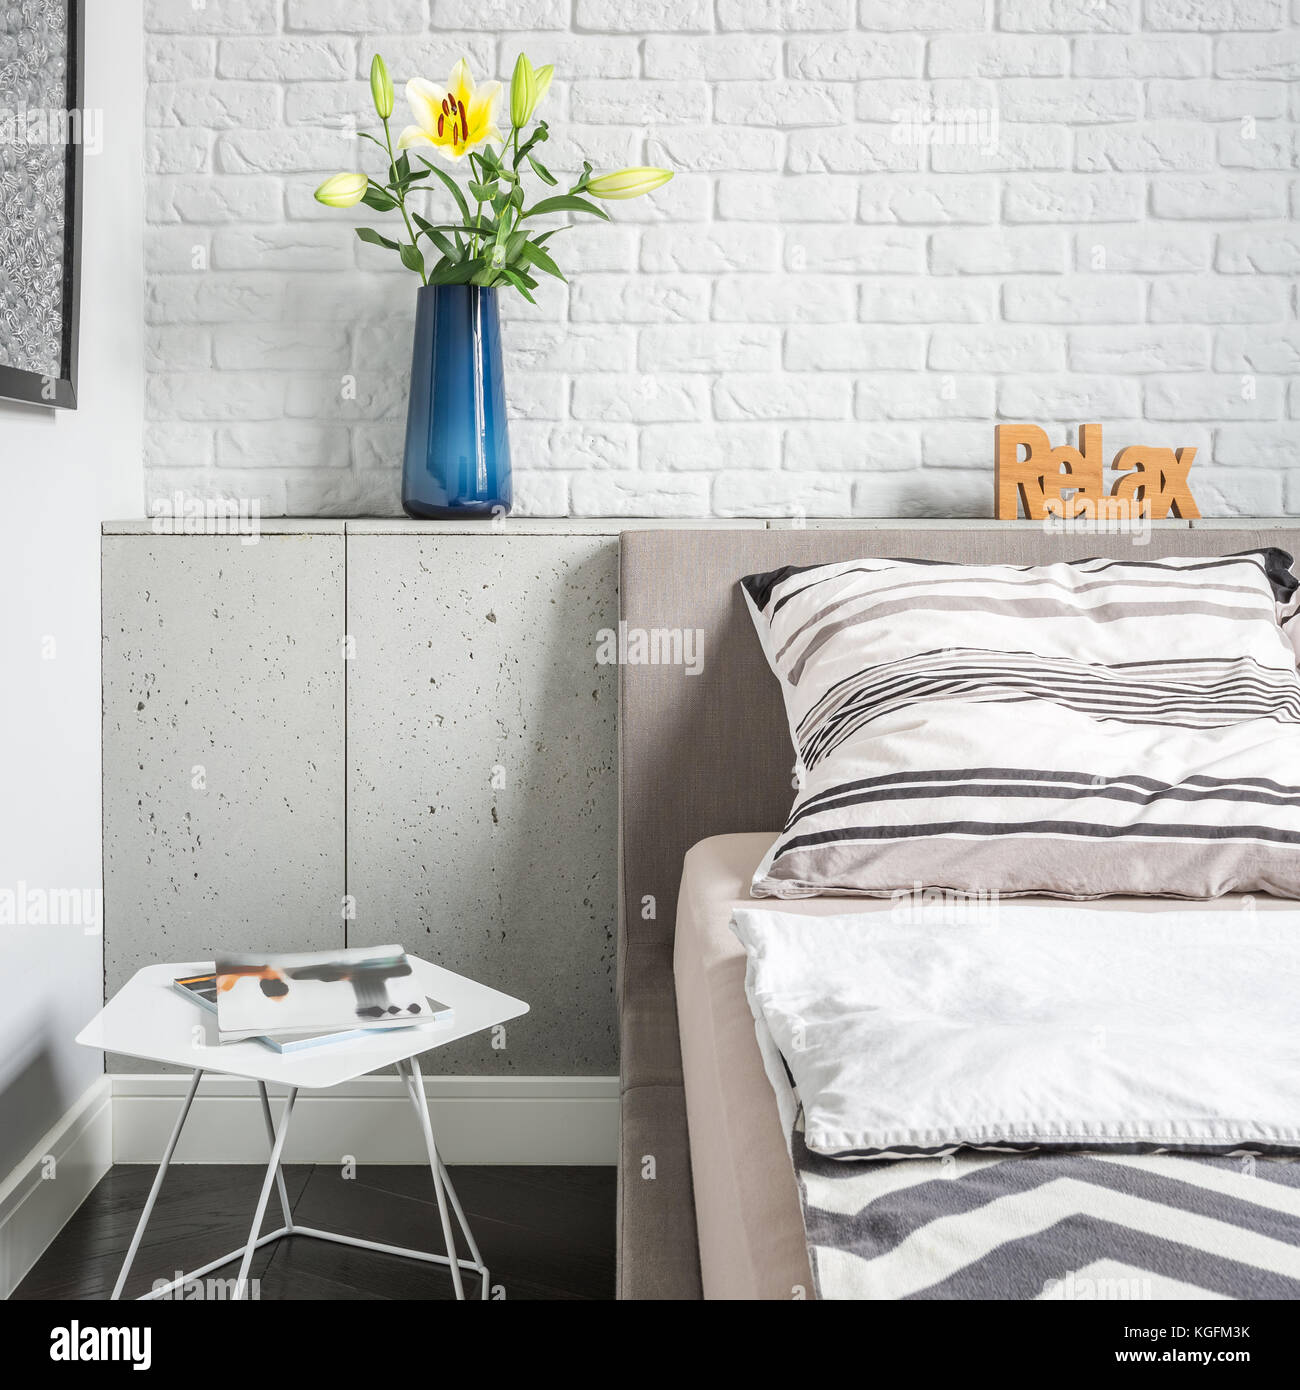 Simple Bedroom With White Brick Wall, Bed And Side Table